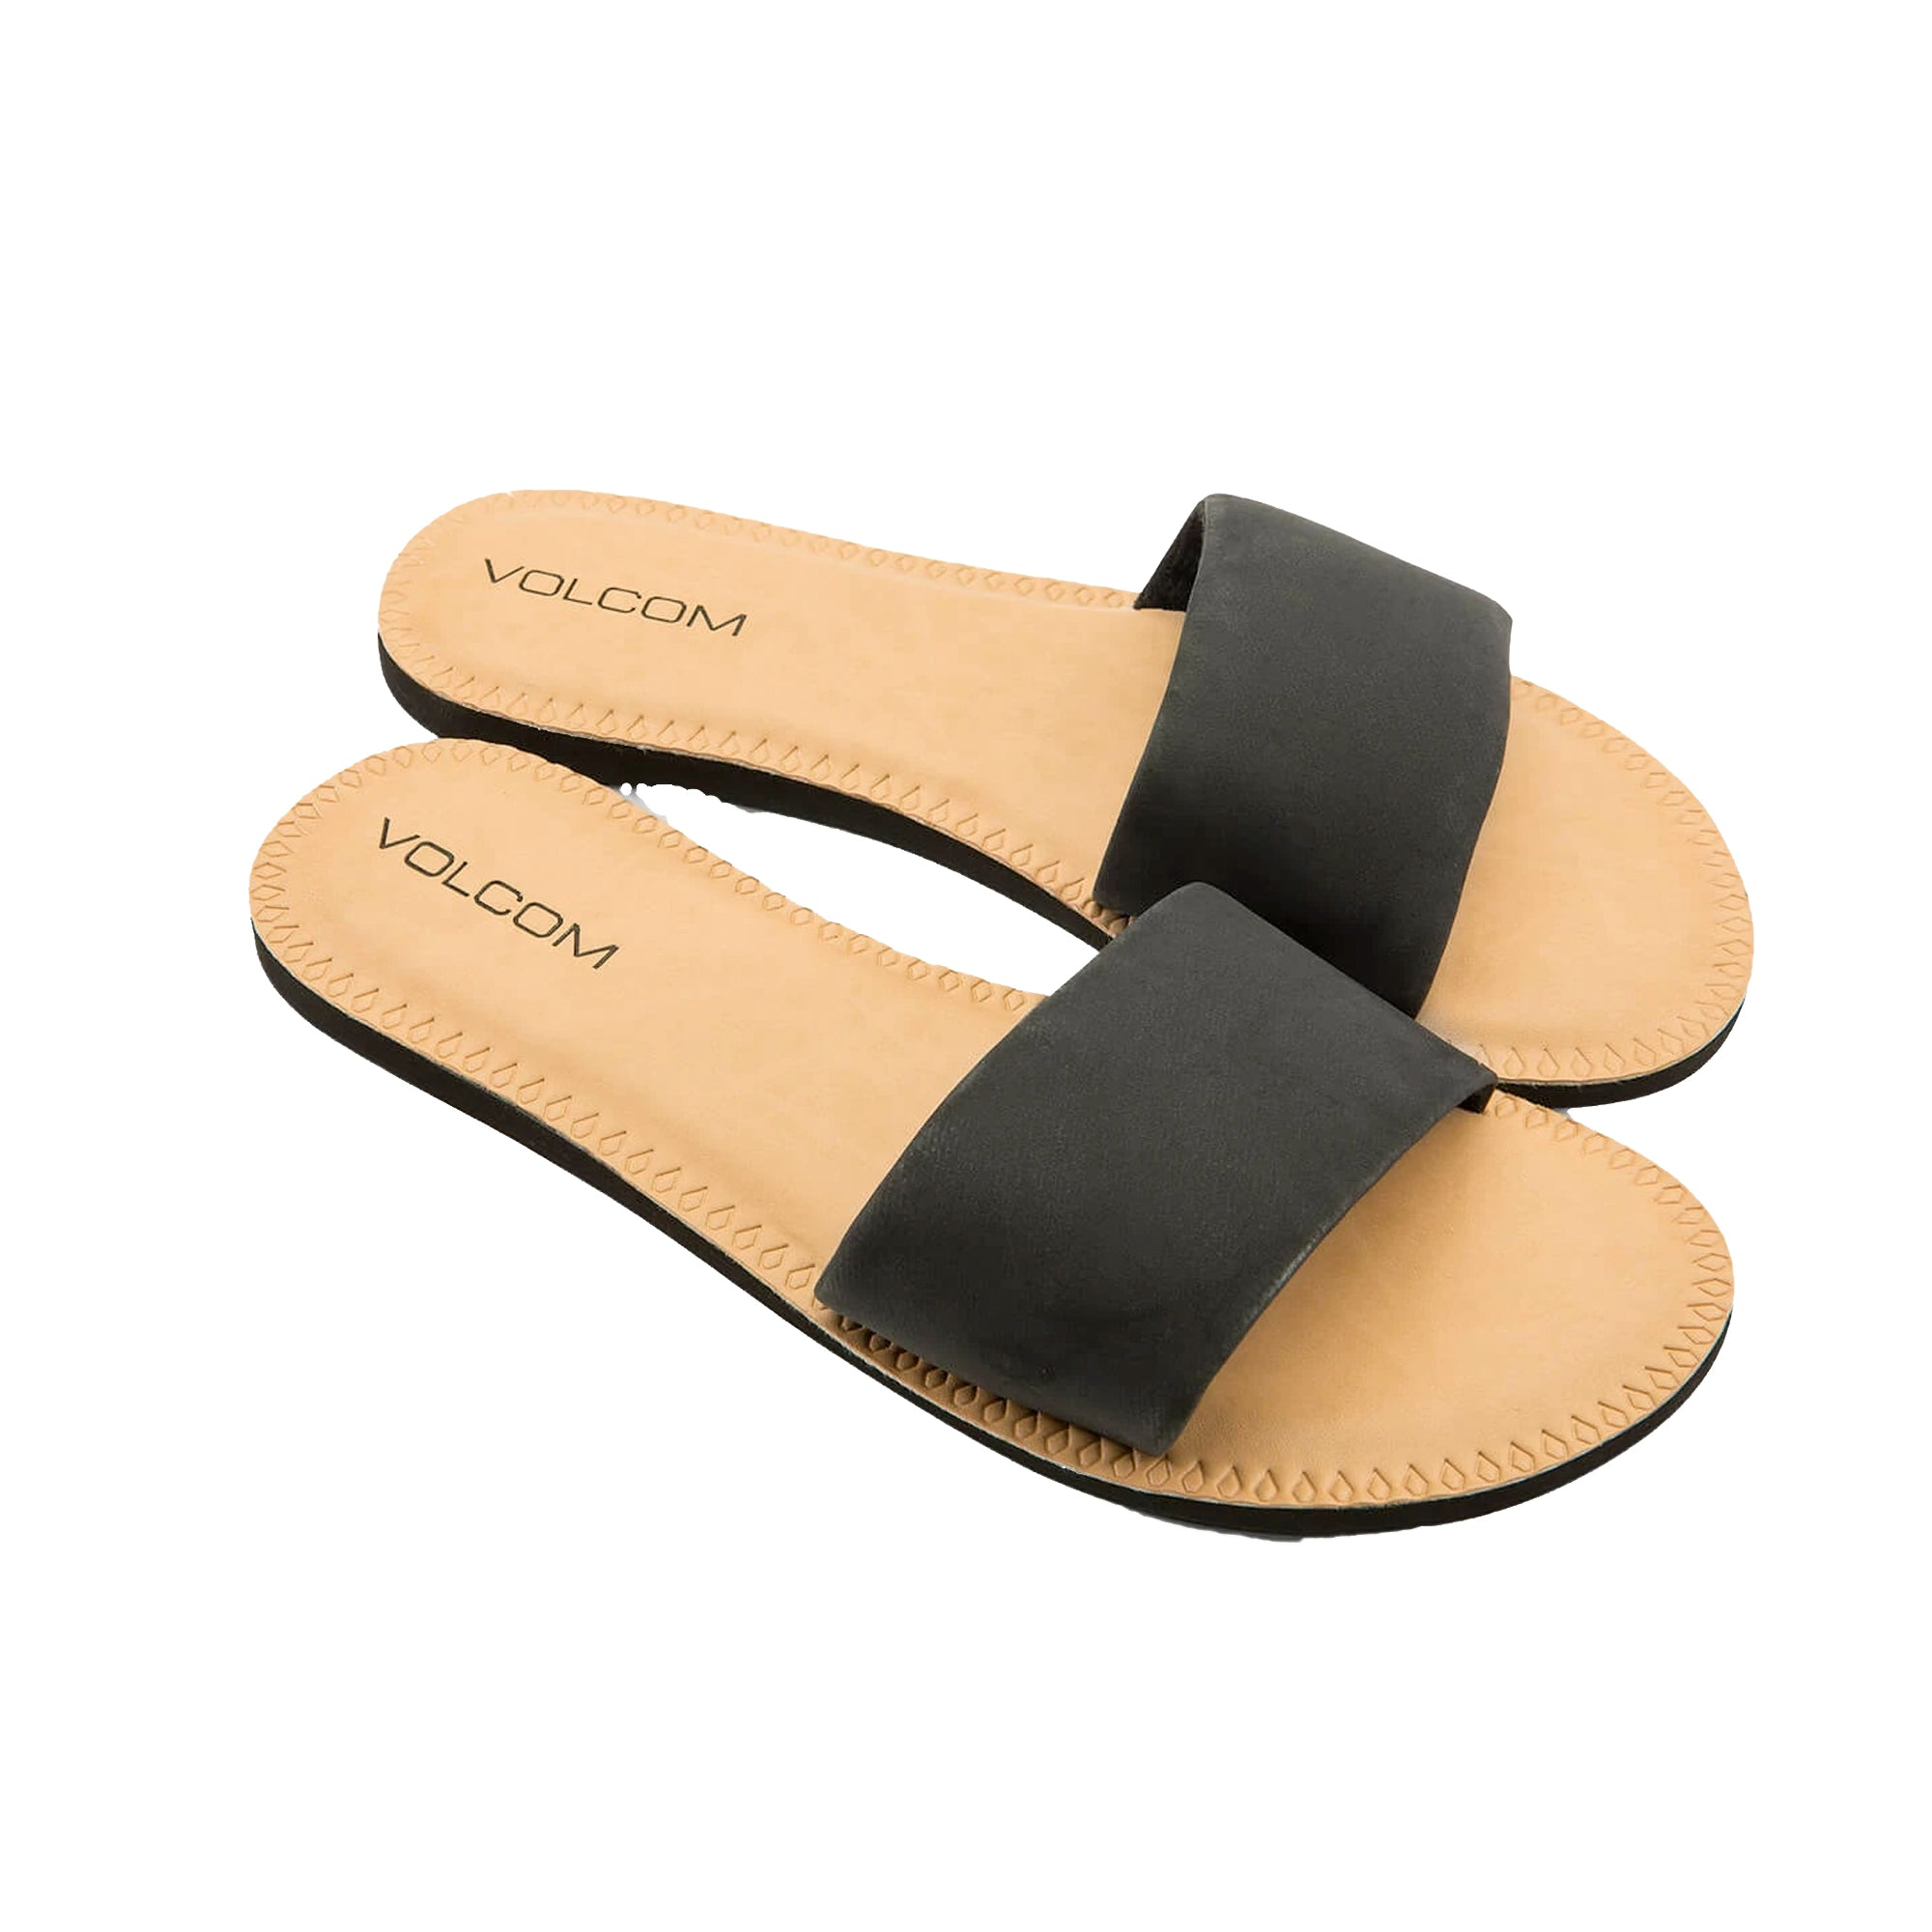 Volcom Simple Slide Women's Sandals